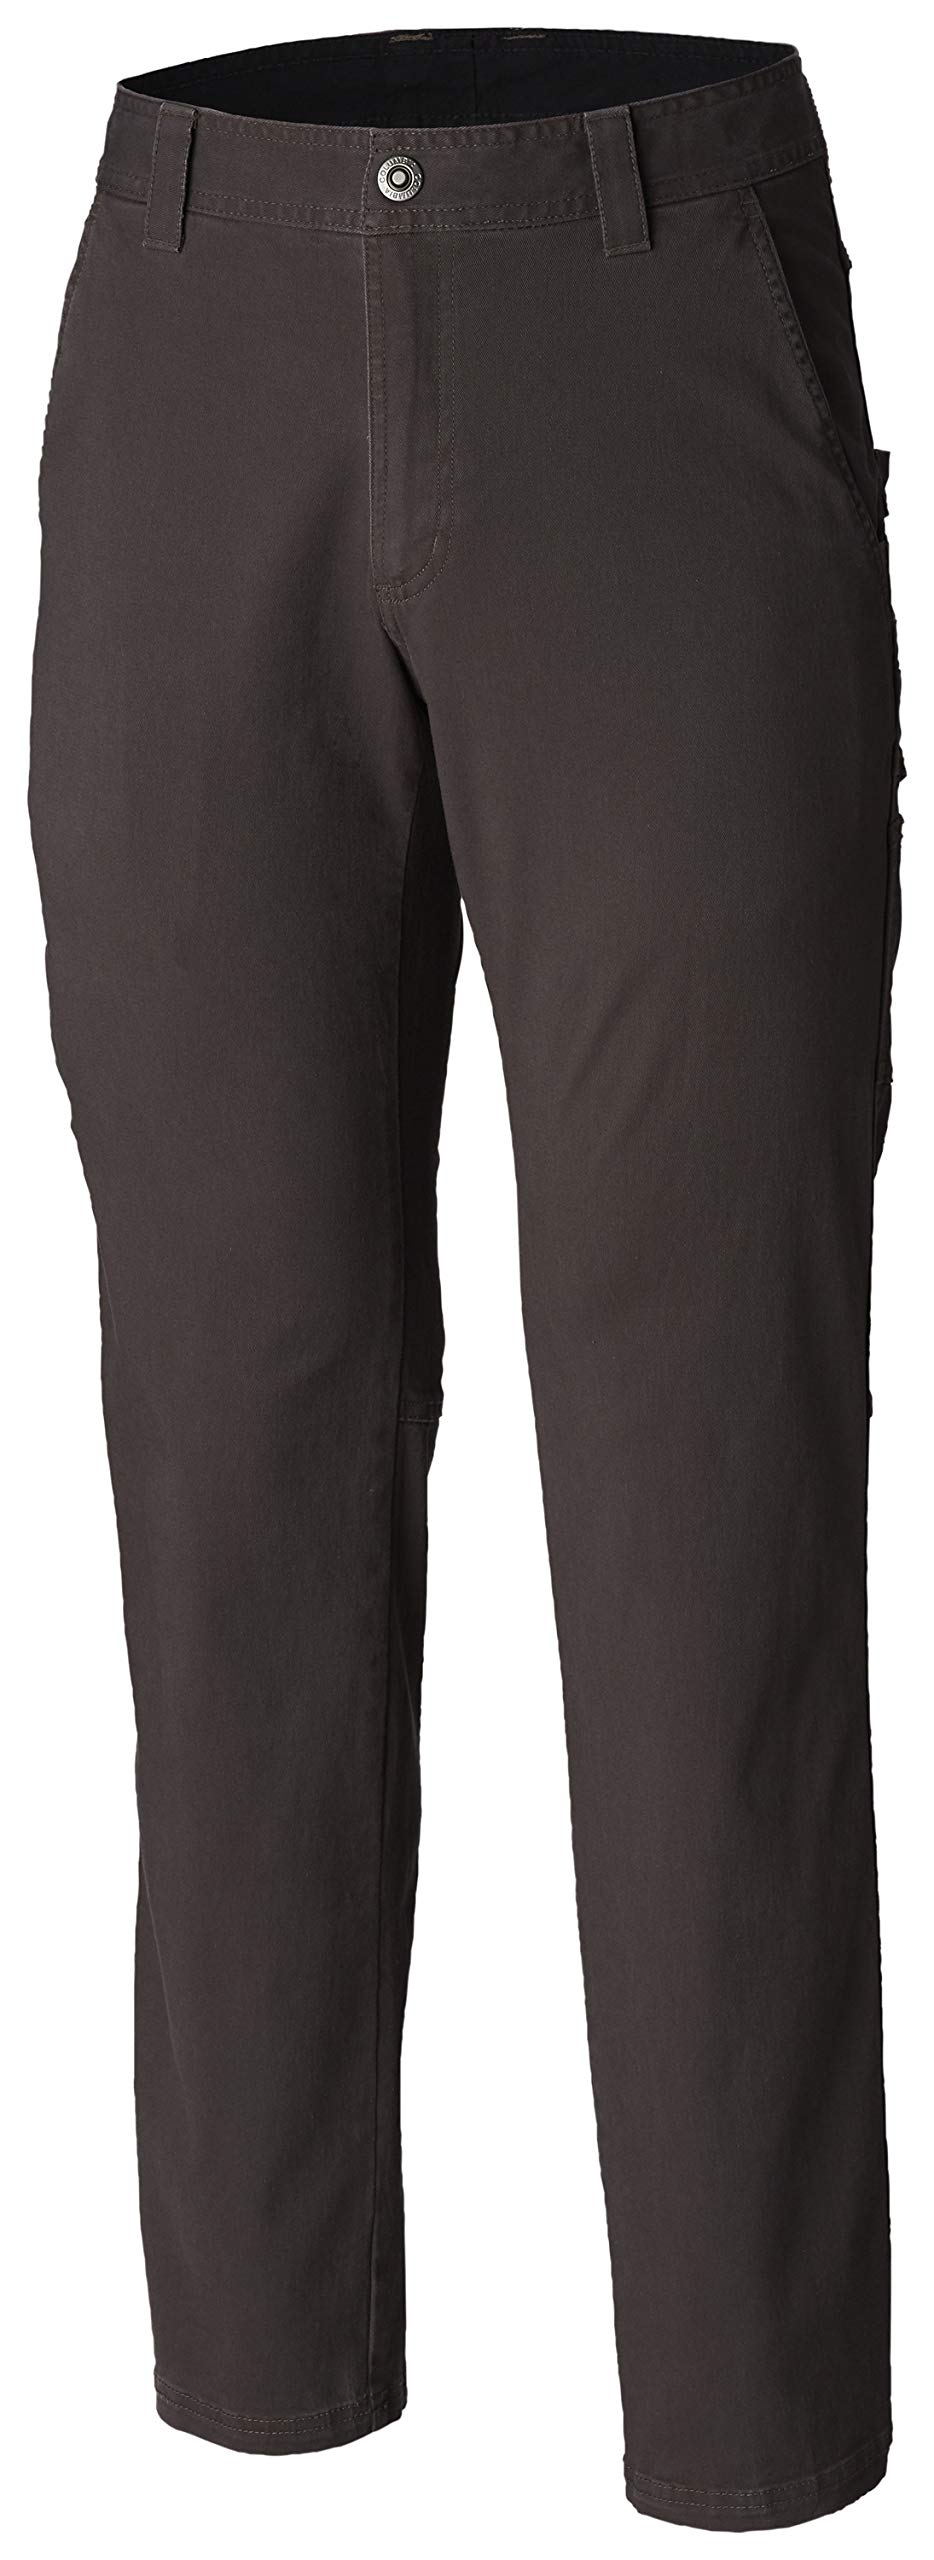 Columbia Men's Ultimate ROC Flex Pant, Mineshaft 30x30